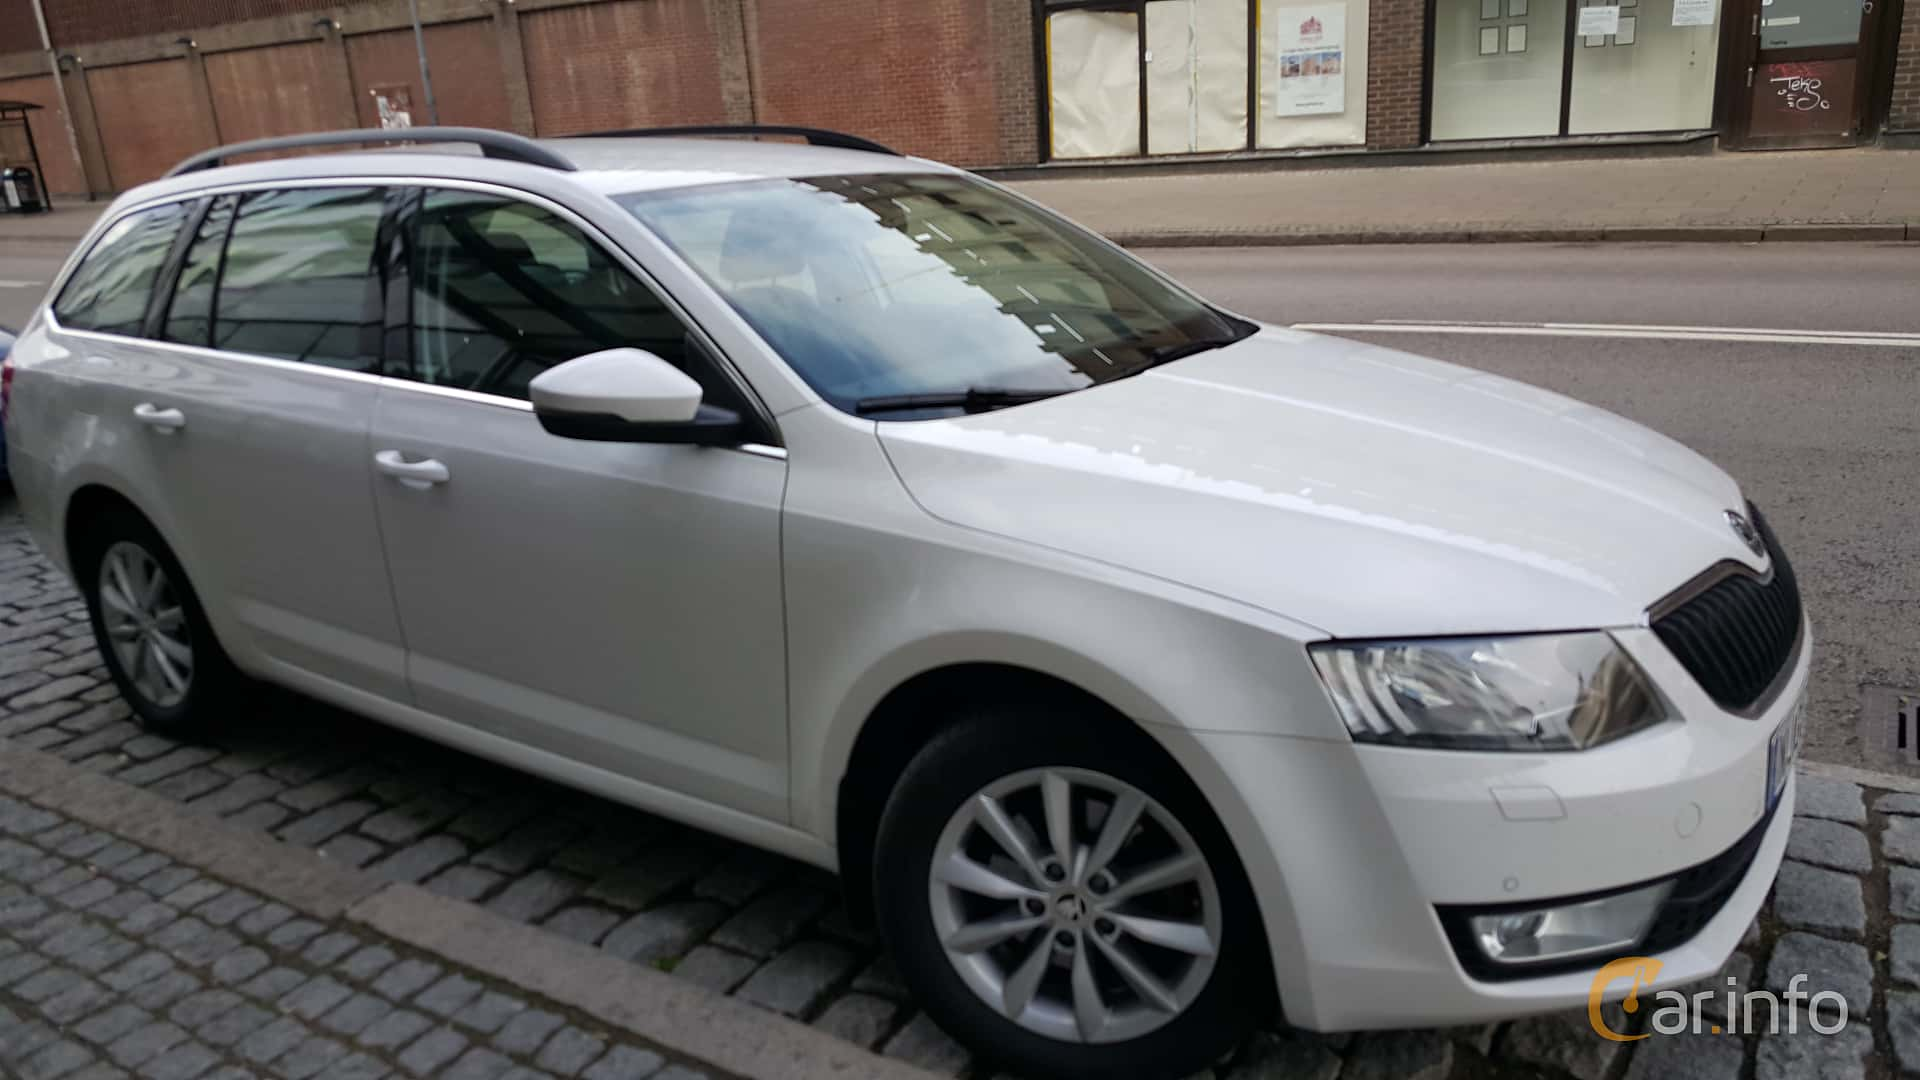 skoda octavia kombi 2 0 tdi manuell 150hk 2014. Black Bedroom Furniture Sets. Home Design Ideas